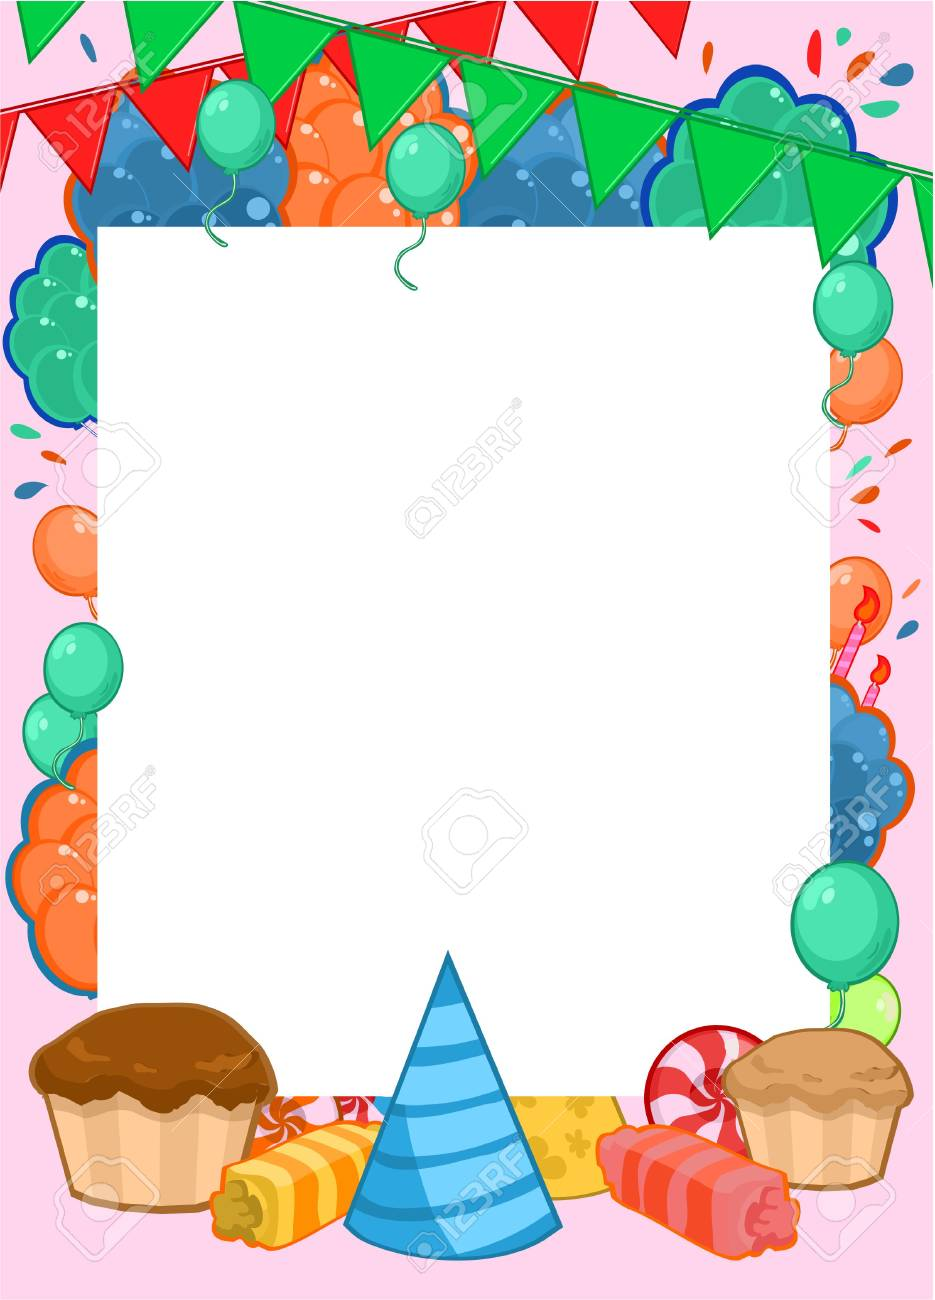 Happy Birthday Invitation Bright Template With Frame For Text